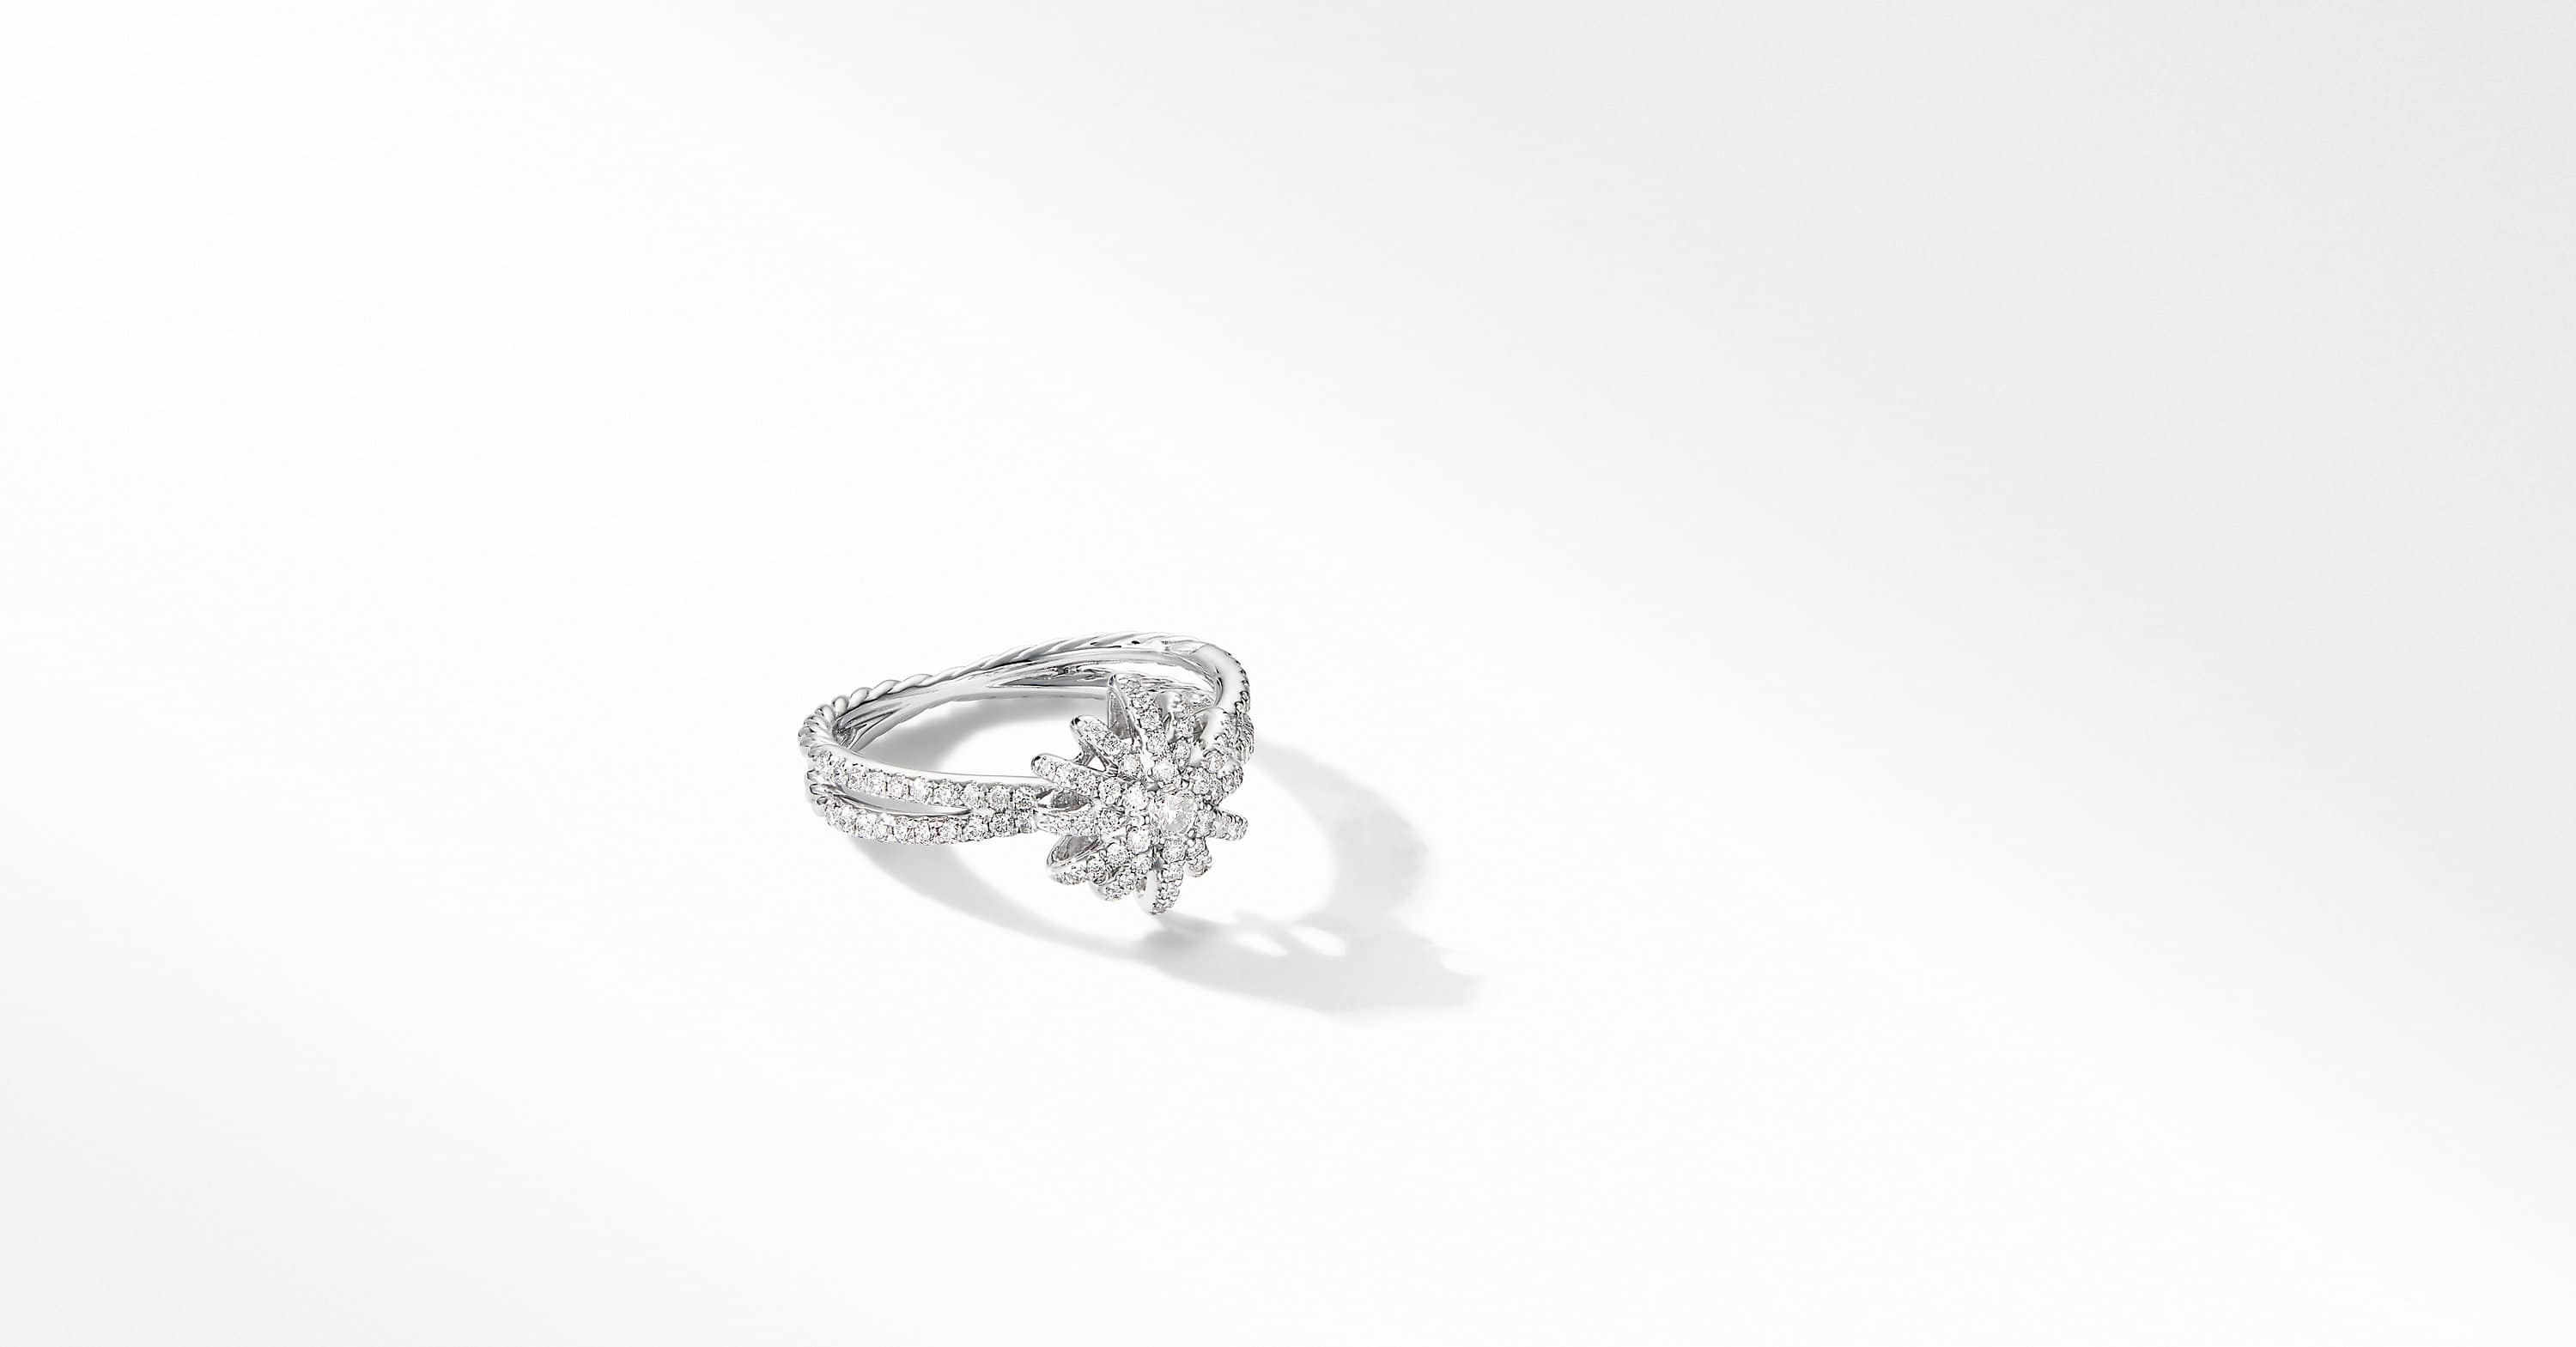 Starburst Ring in 18K White Gold with Pavé